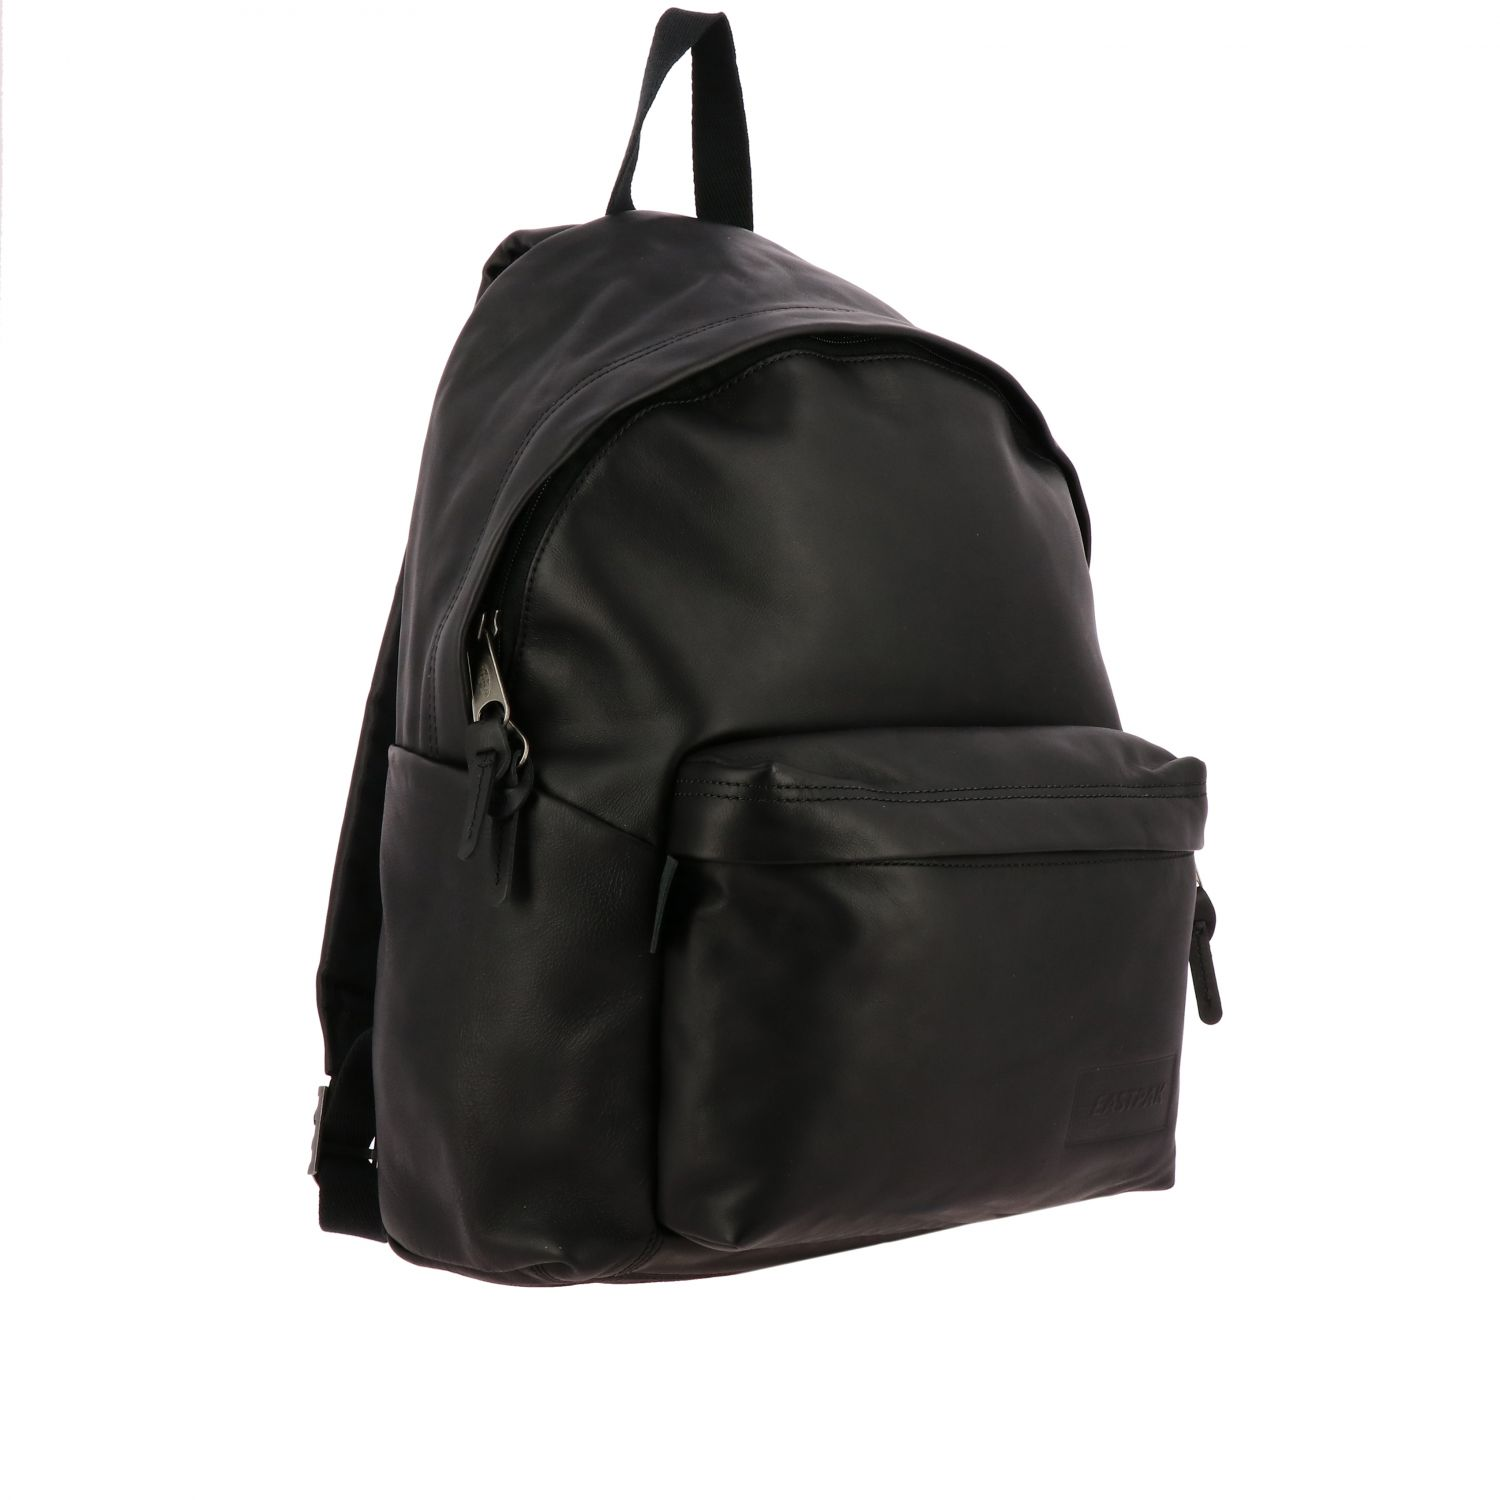 Backpack Eastpak: Shoulder bag women Eastpak black 2